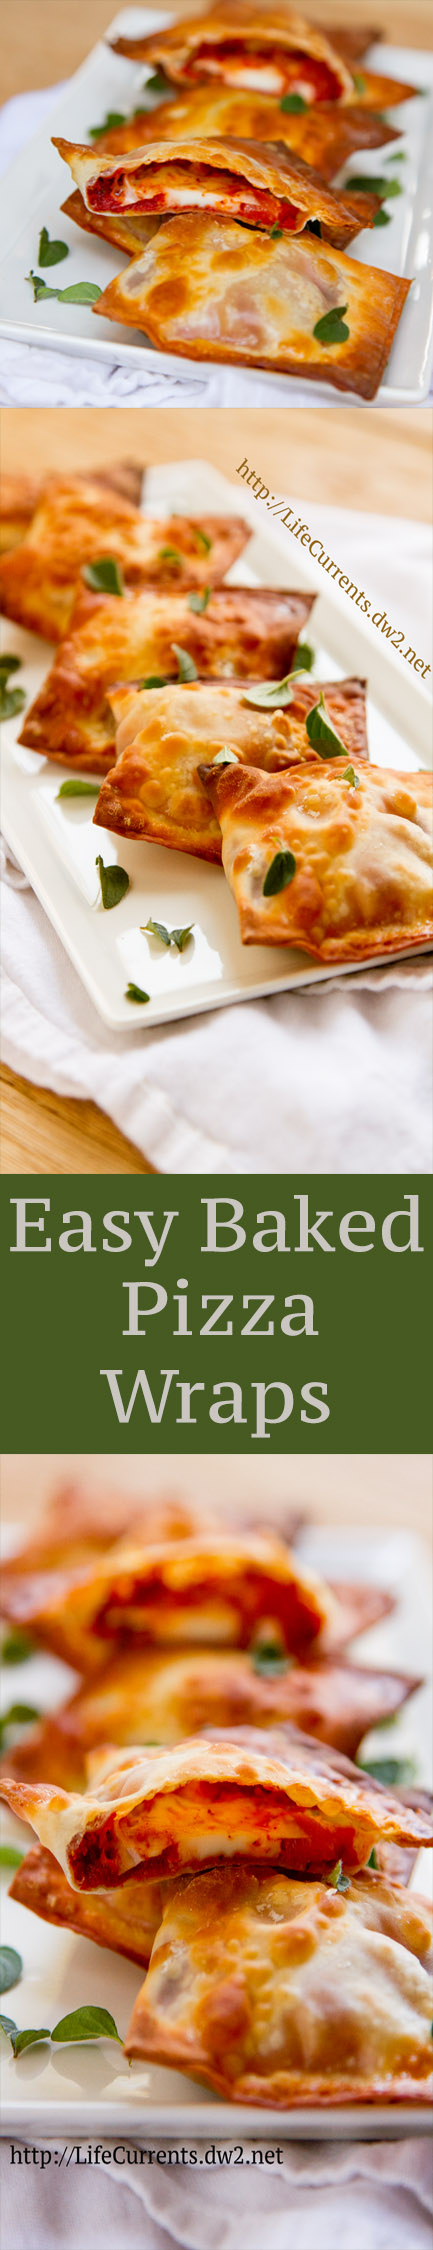 Baked Pizza Wraps recipe